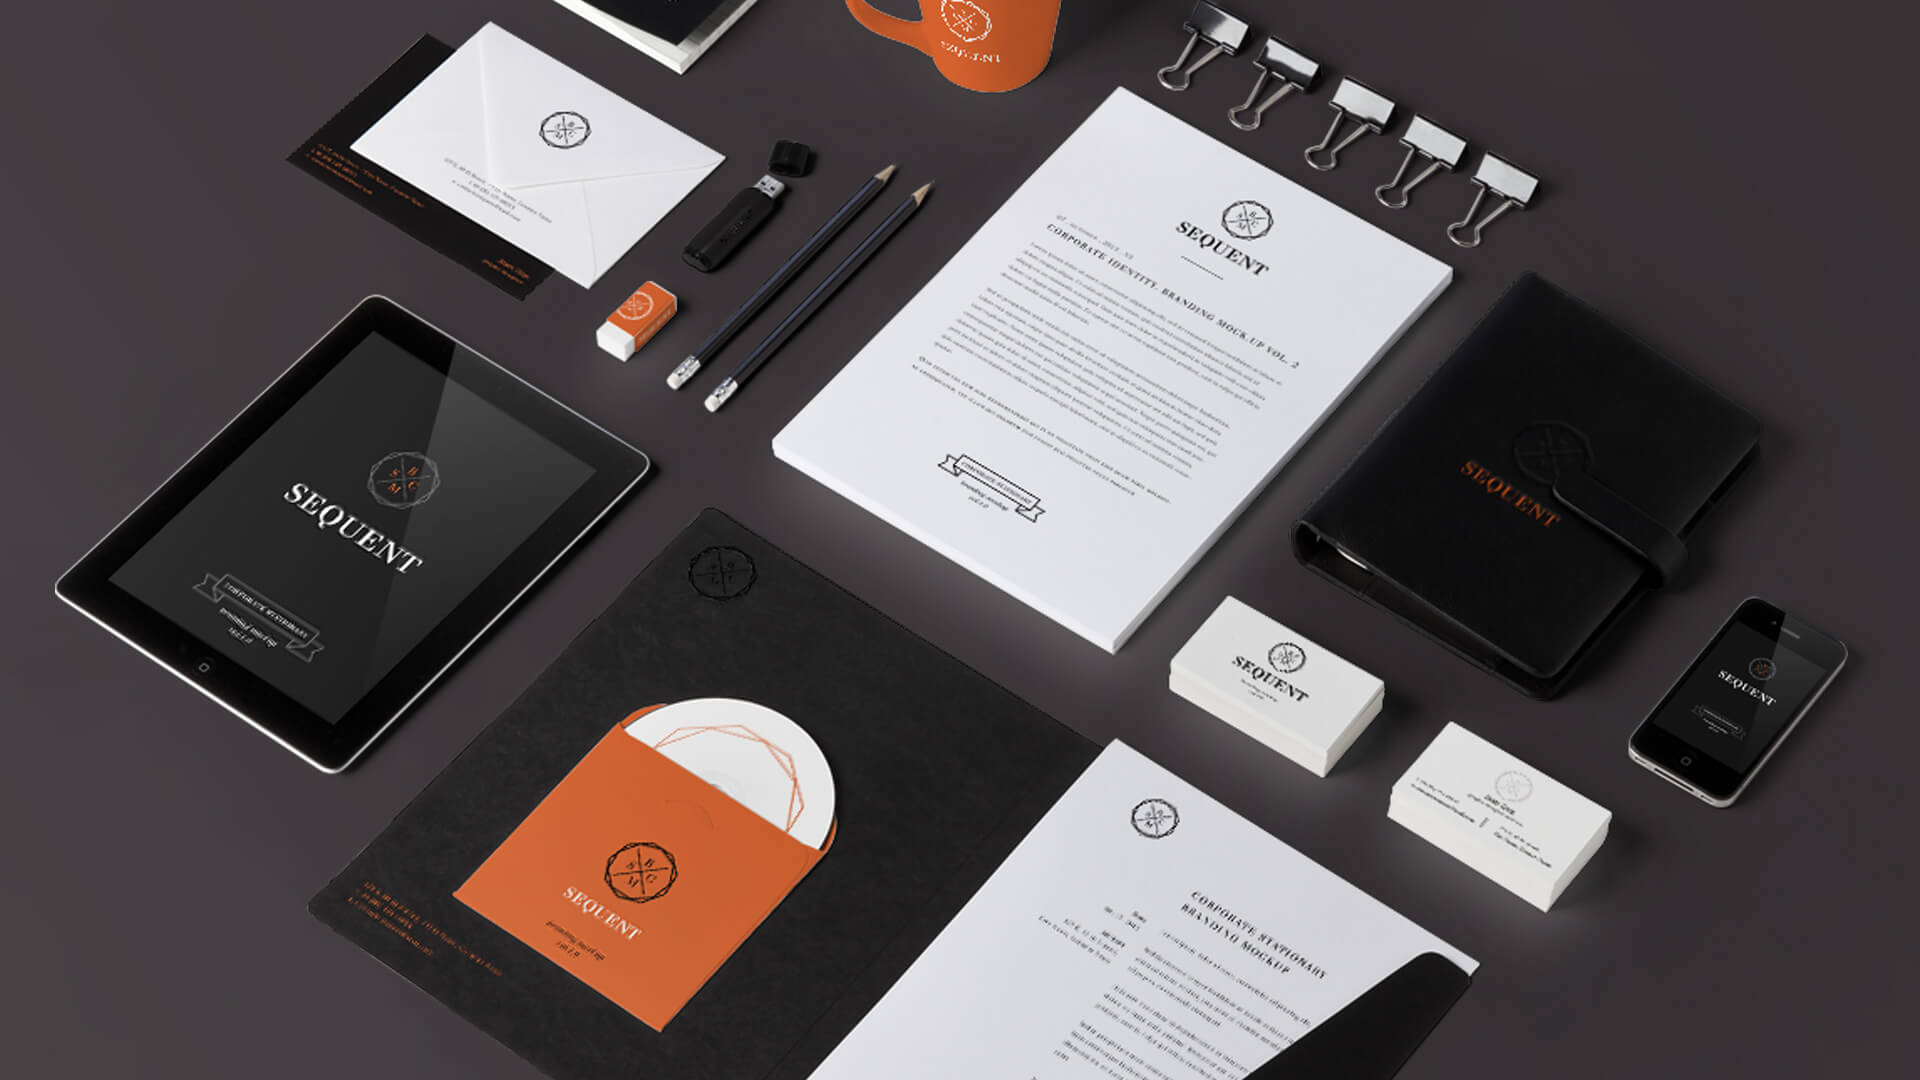 Corporate Identity & Brand Design Inspiration